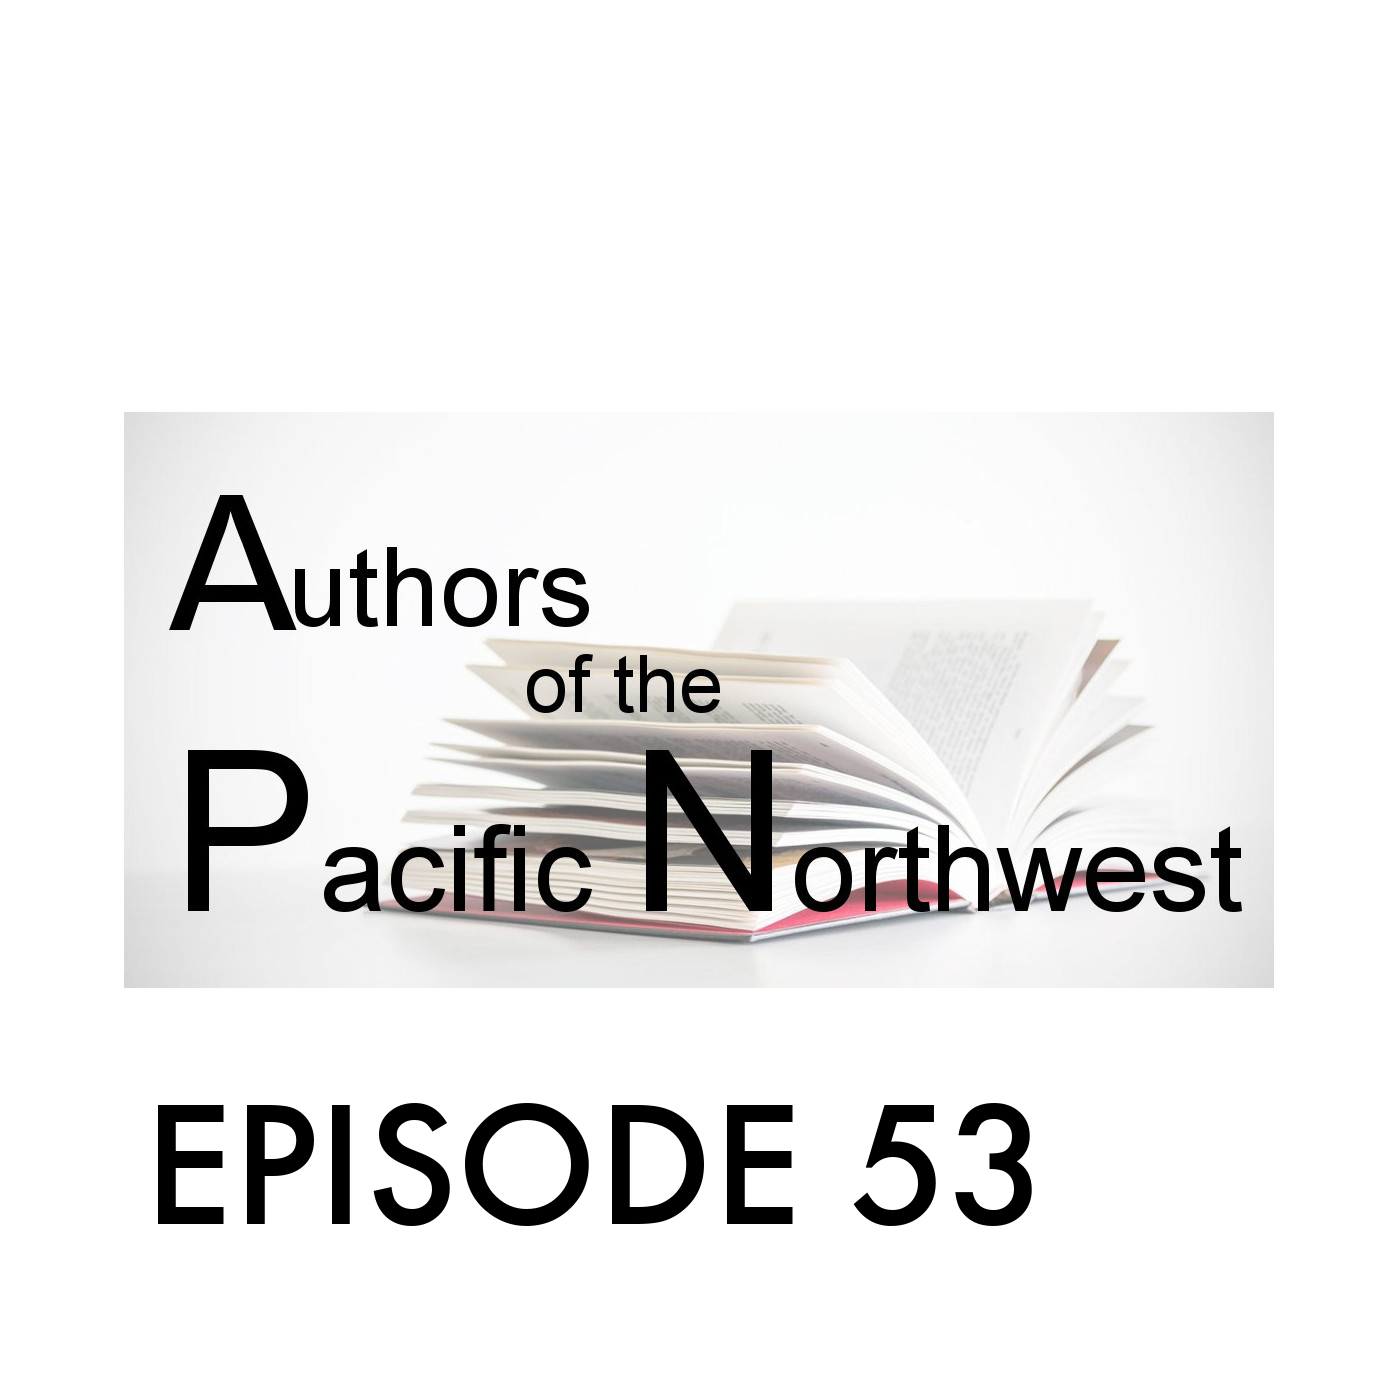 Episode 53: Lisa Reddick; Ecopsychologiest & Fiction Author from Edmonds, Washington